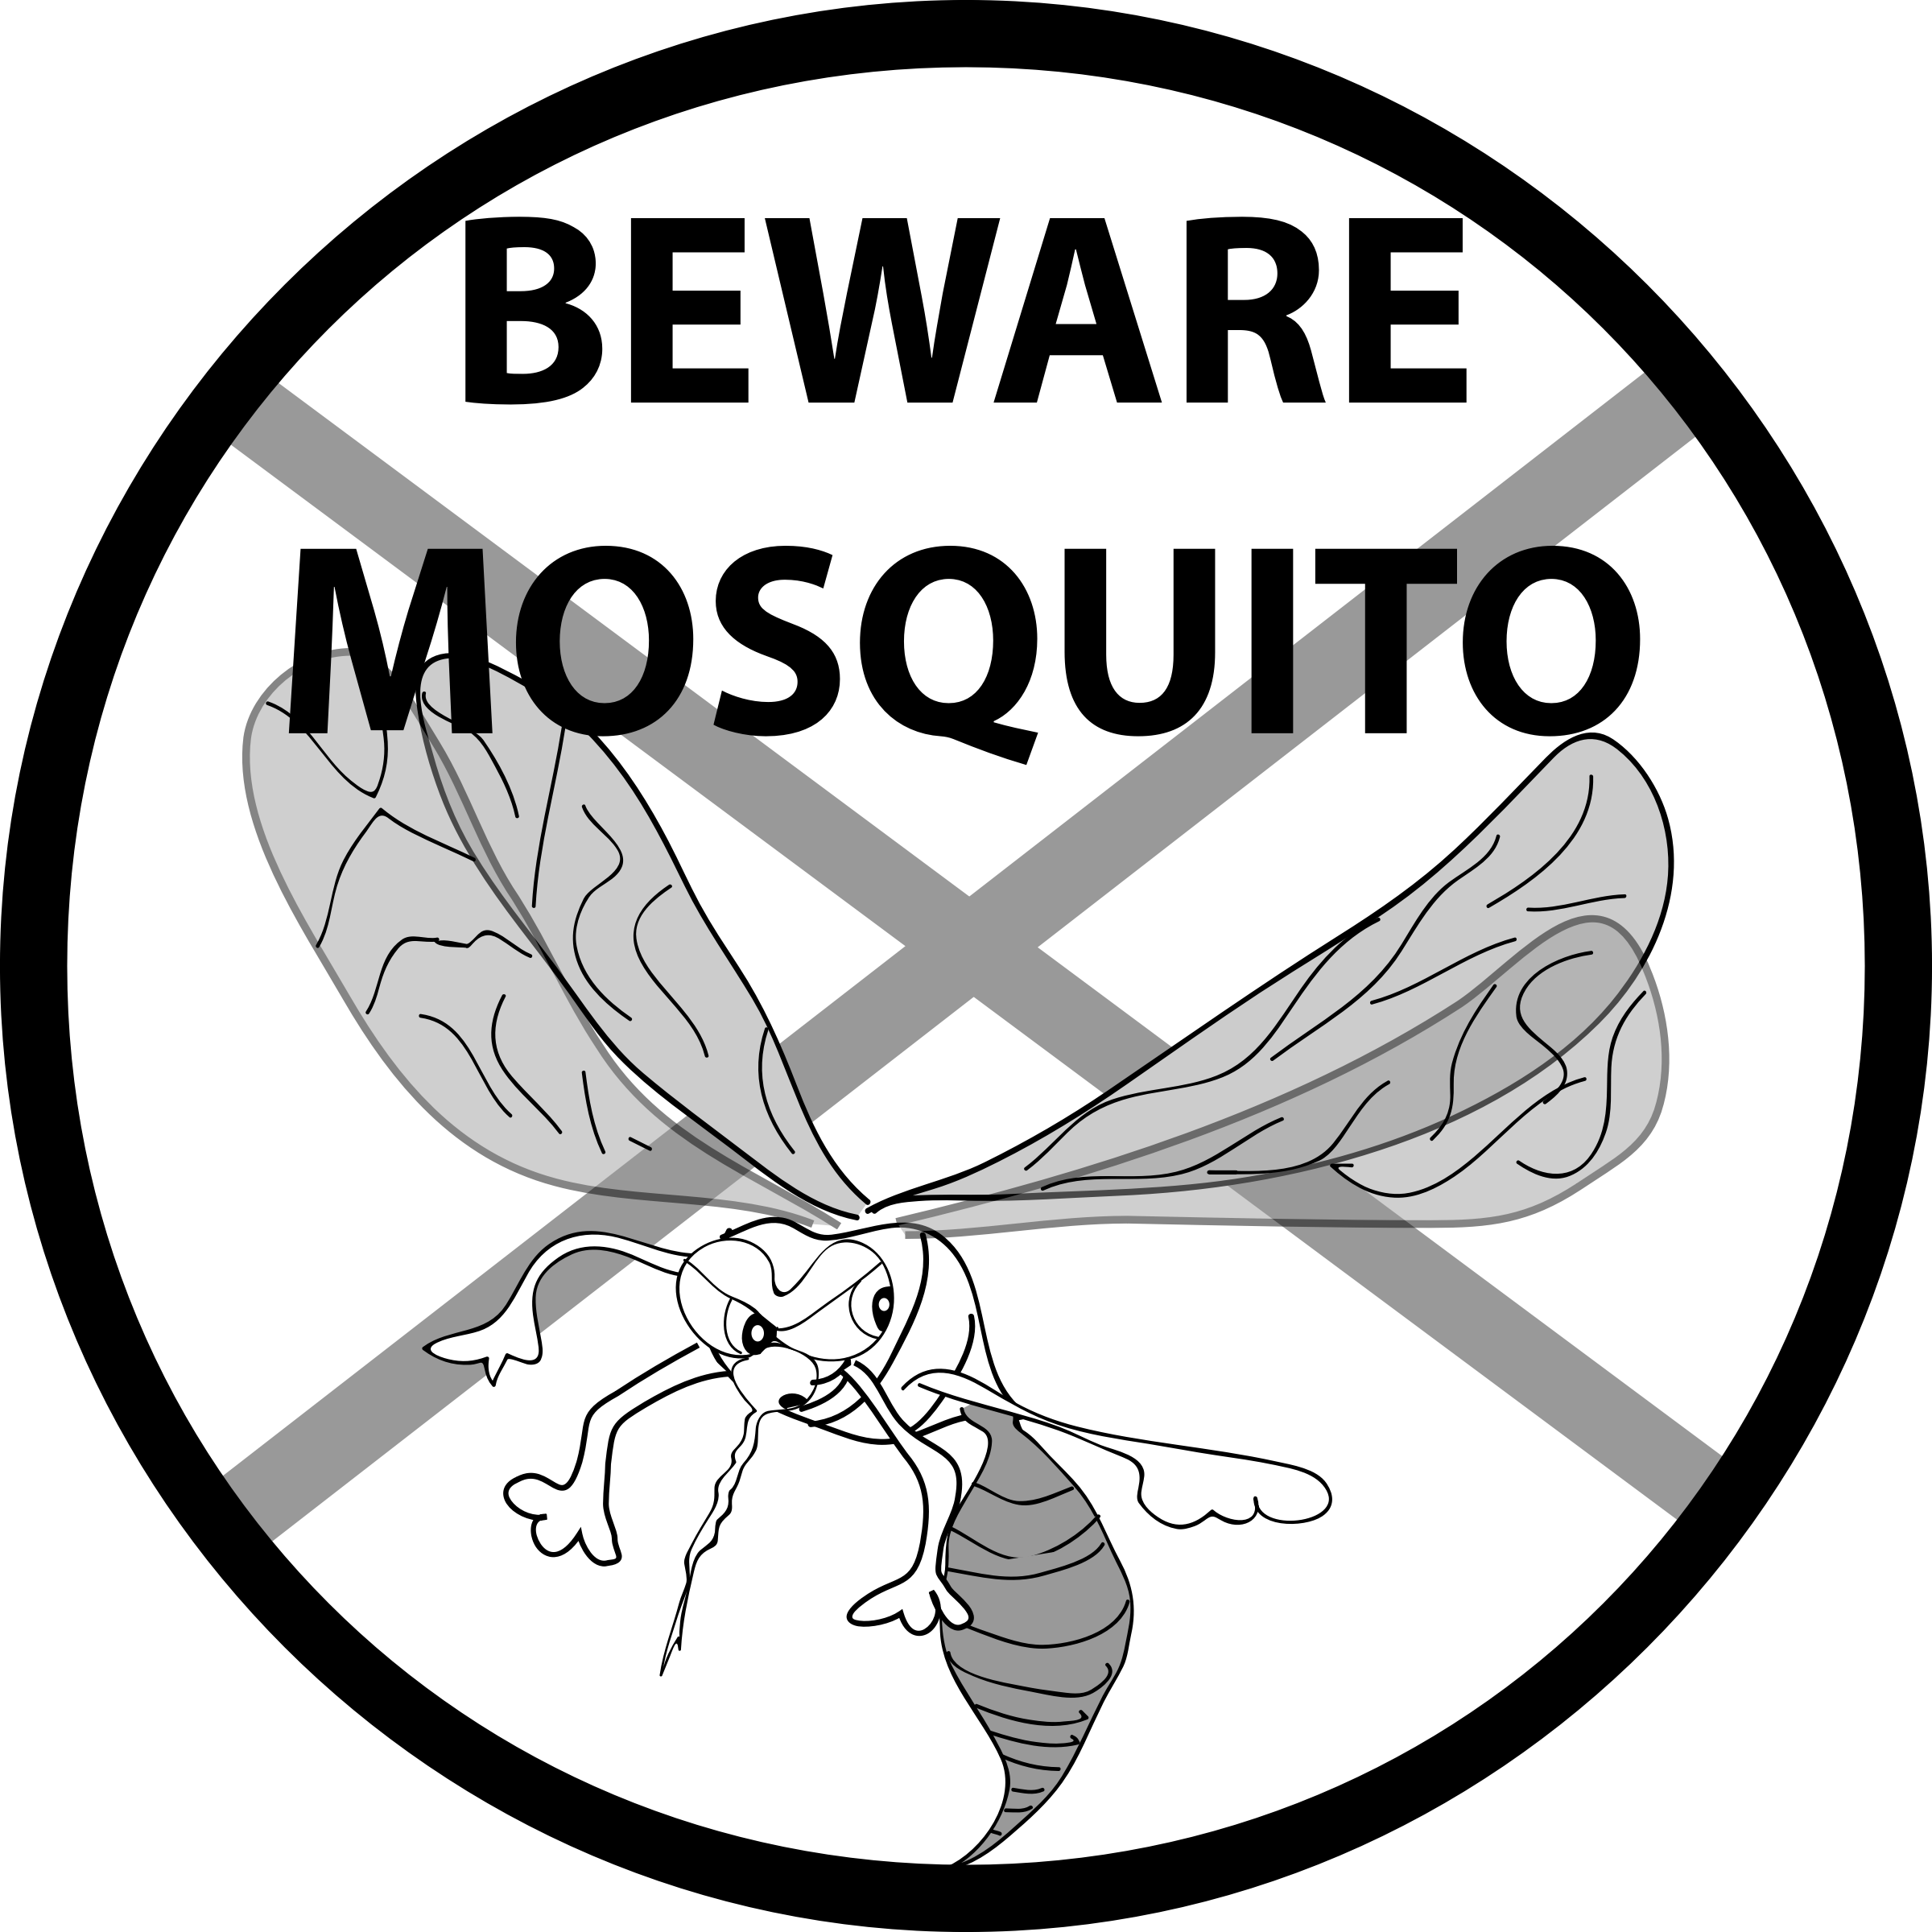 Mosquito clipart file. Beware icons png free